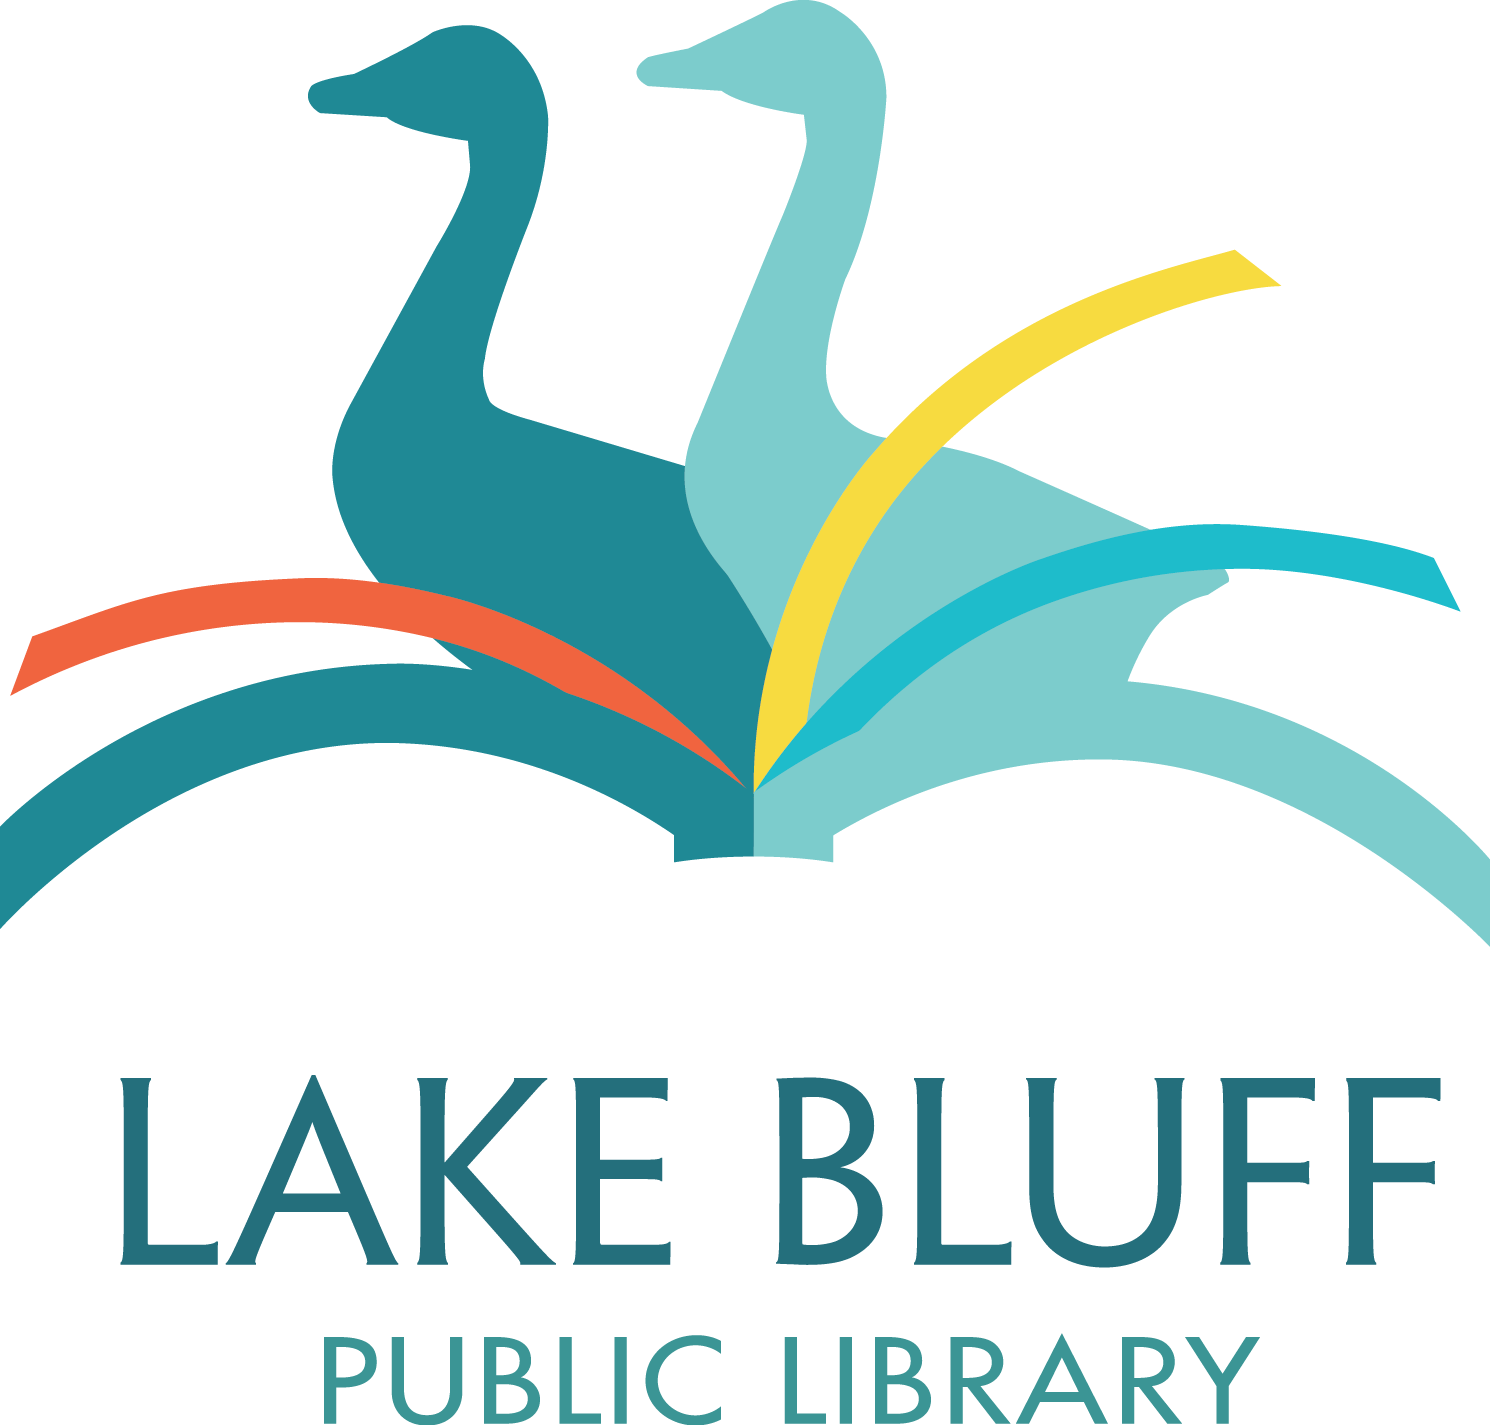 Lake clipart forest stream. Bluff public library